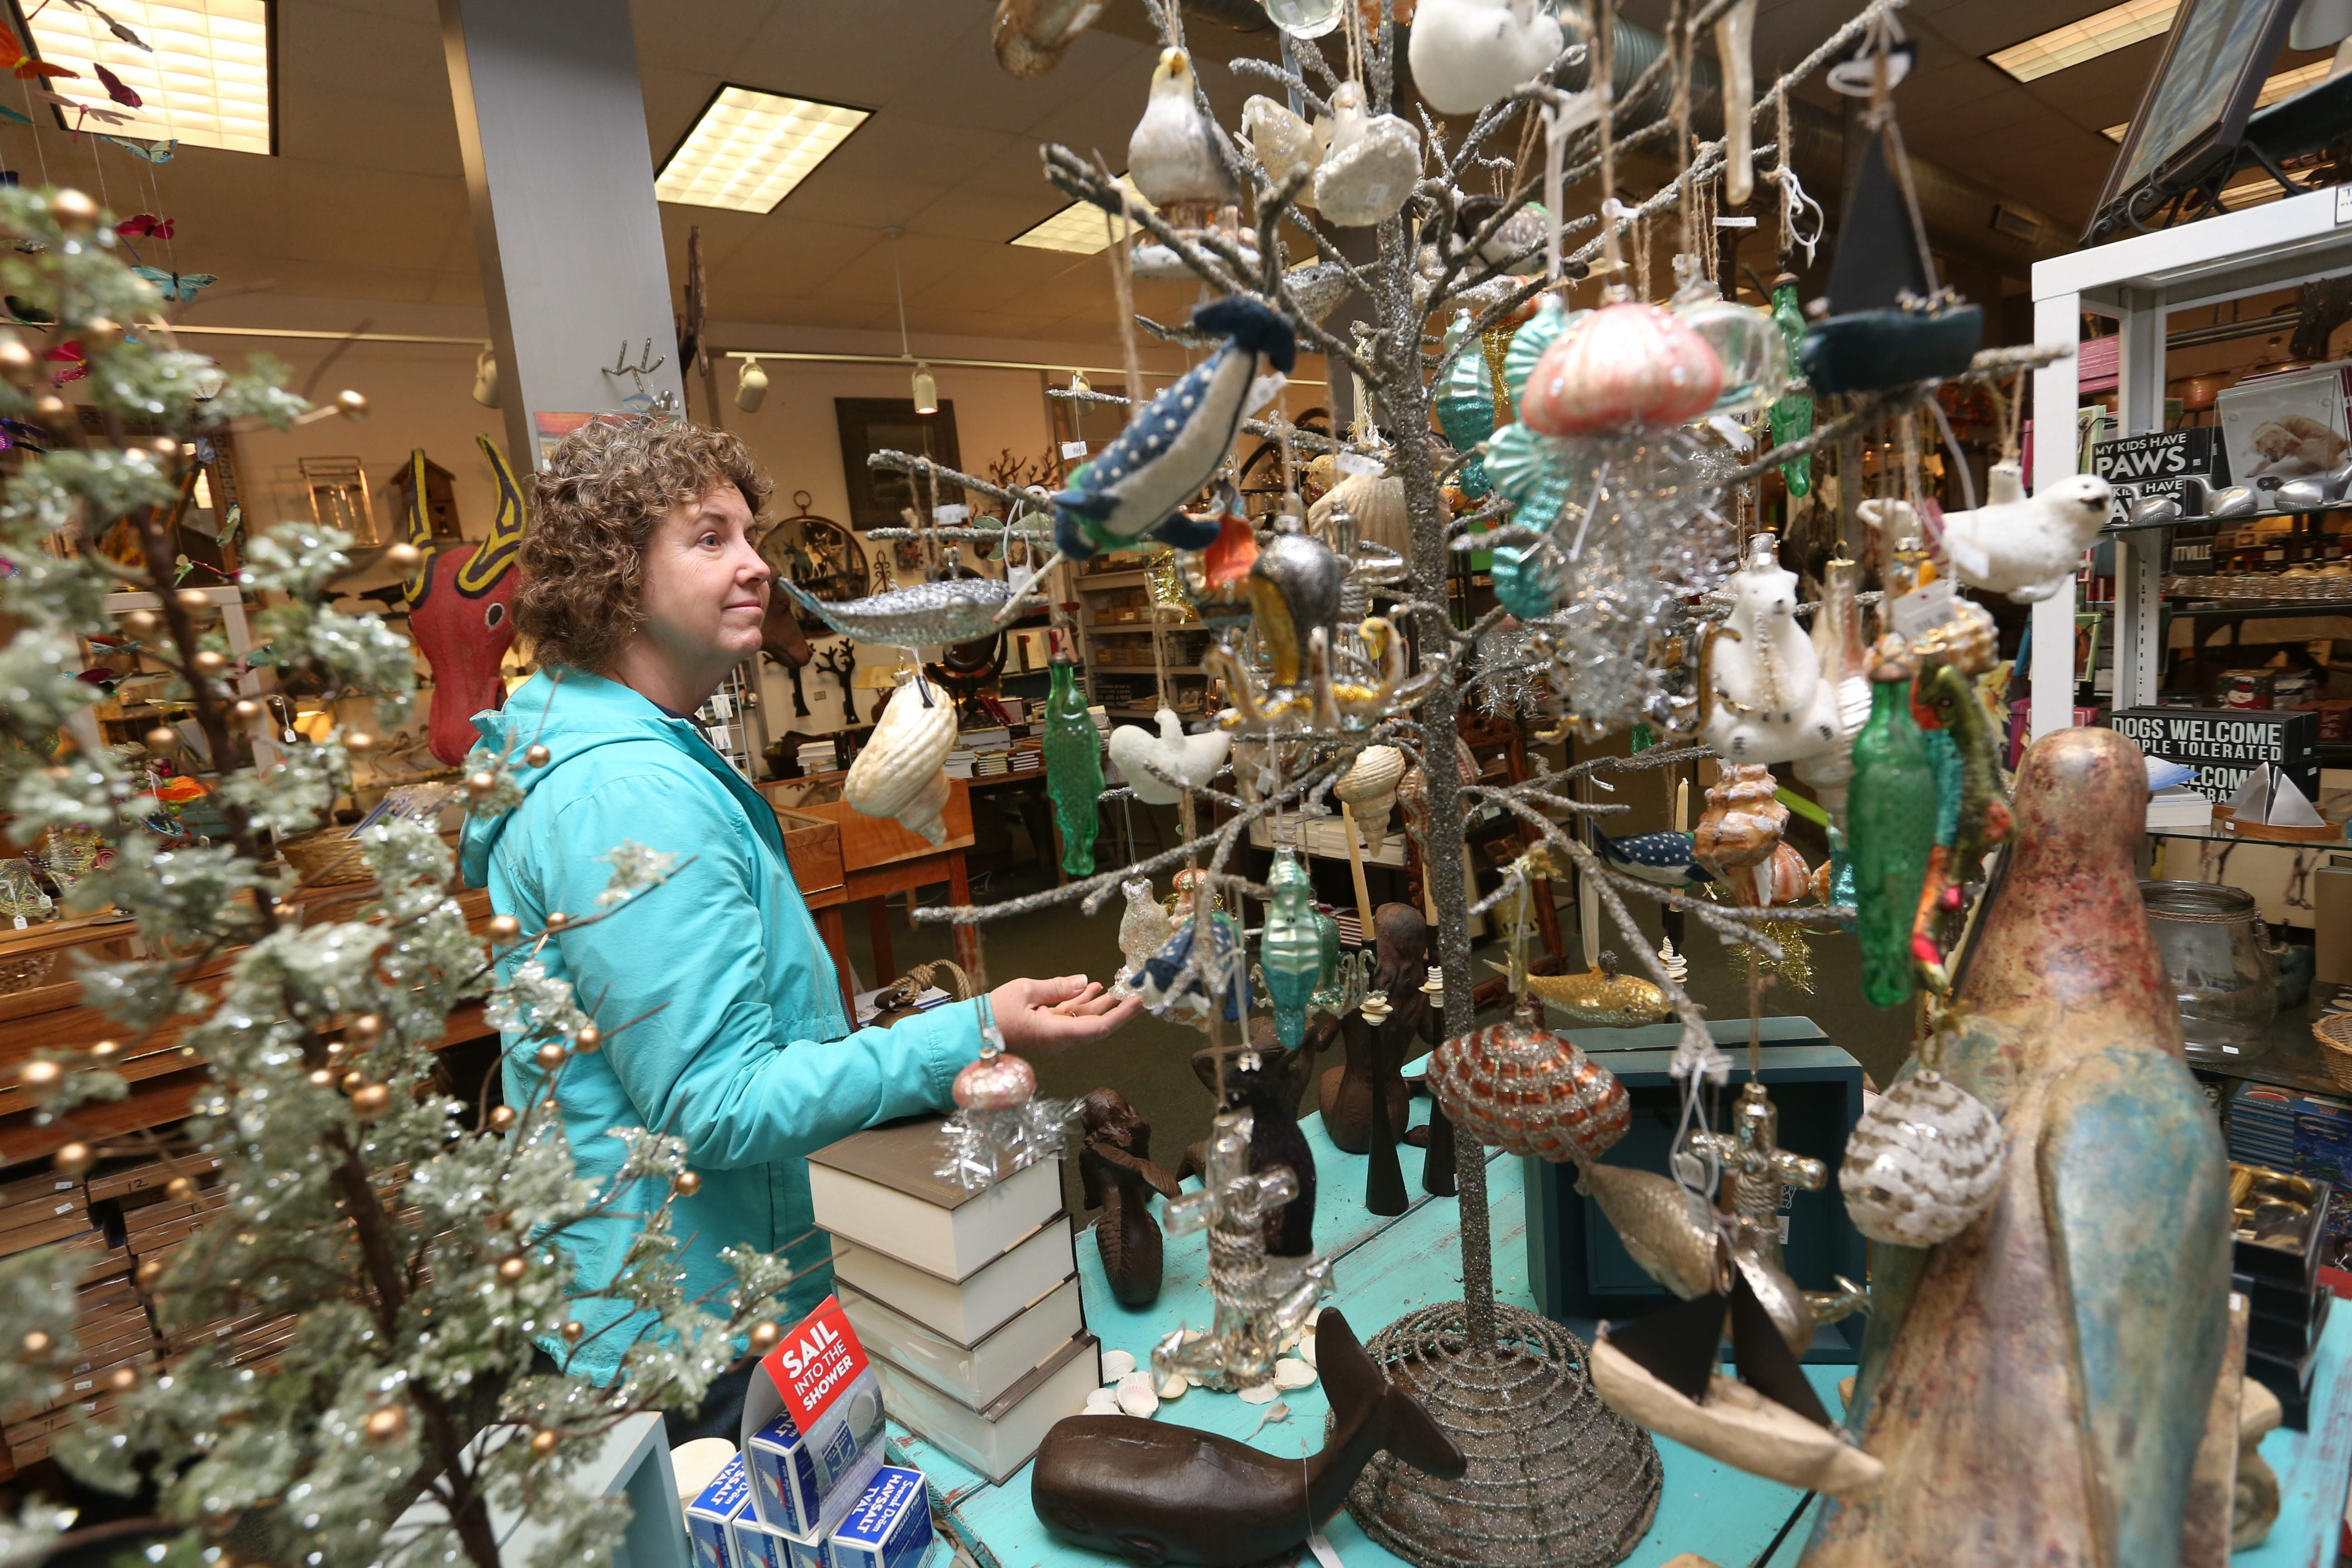 Ellicottville will hold its popular fall festival on Columbus weekend. Kazoo II at 21 Washington St. is an eclectic gift shop. Maryann DeGennaro, of Wheatfield,  looks at some ornamentsThursday, Oct. 1, 2015.  (Sharon Cantillon/Buffalo News)